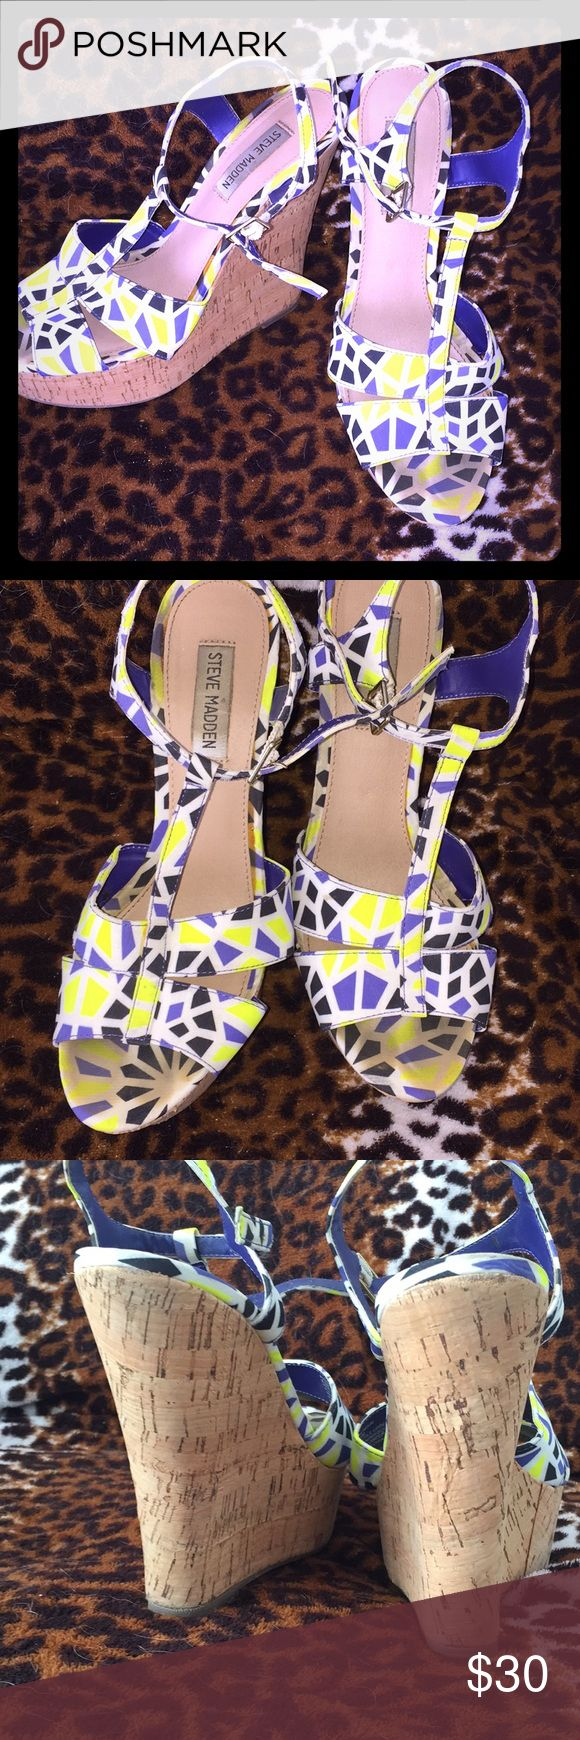 Steve Madden espadrilles Gorgeous tropical pattern espadrilles from Steve Madden. Used with love, these shoes will rock any summer party. Neon yellow with blue and white. Steve Madden Shoes Espadrilles